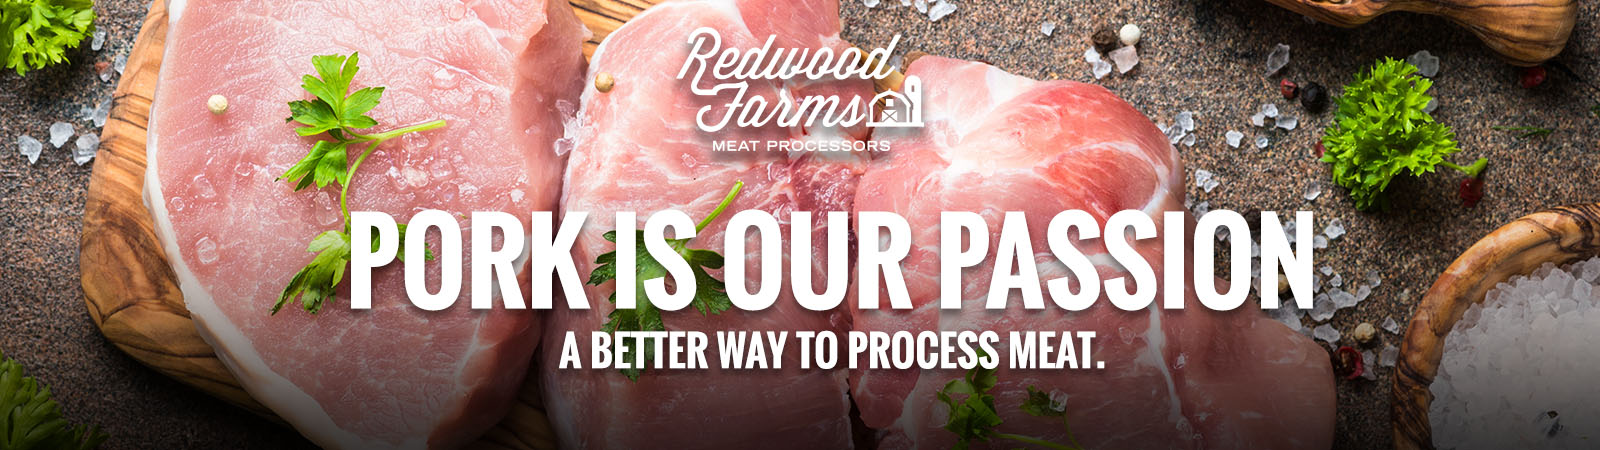 Pork is our passion. A better way to process meat.